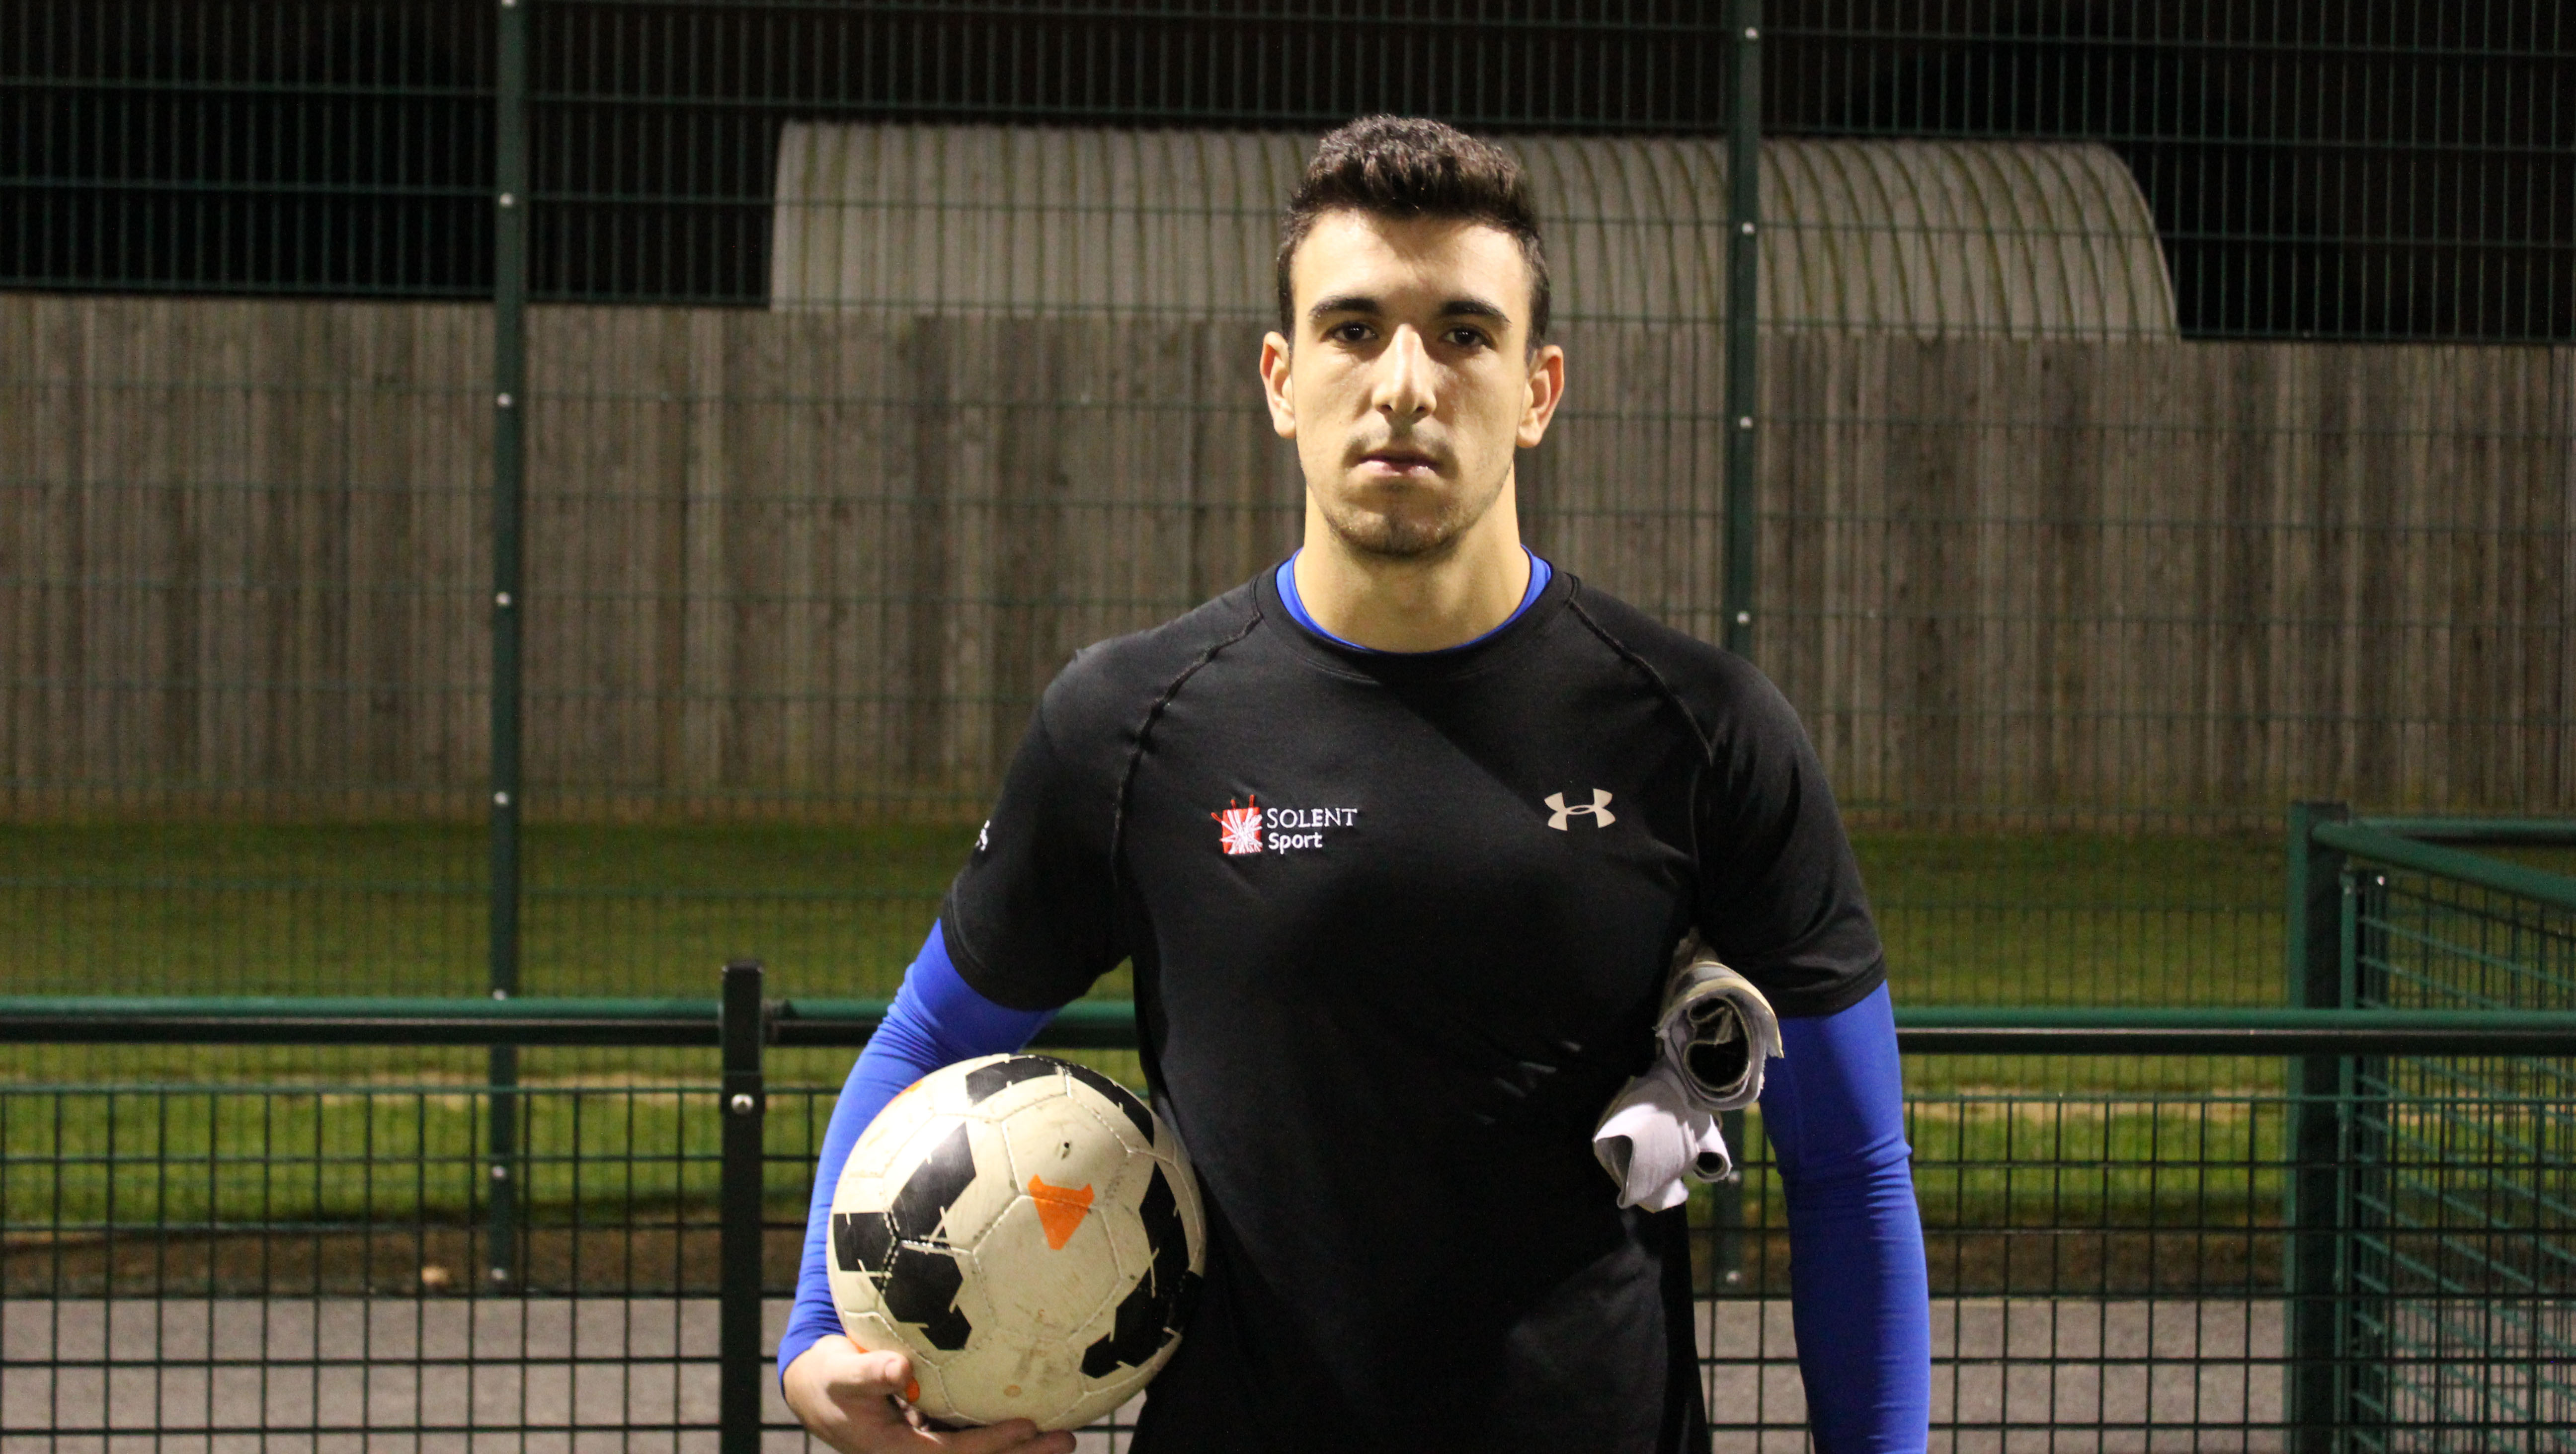 TEAM SOLENT GOALKEEPER CALLED UP FOR INTERNATIONAL MATCH